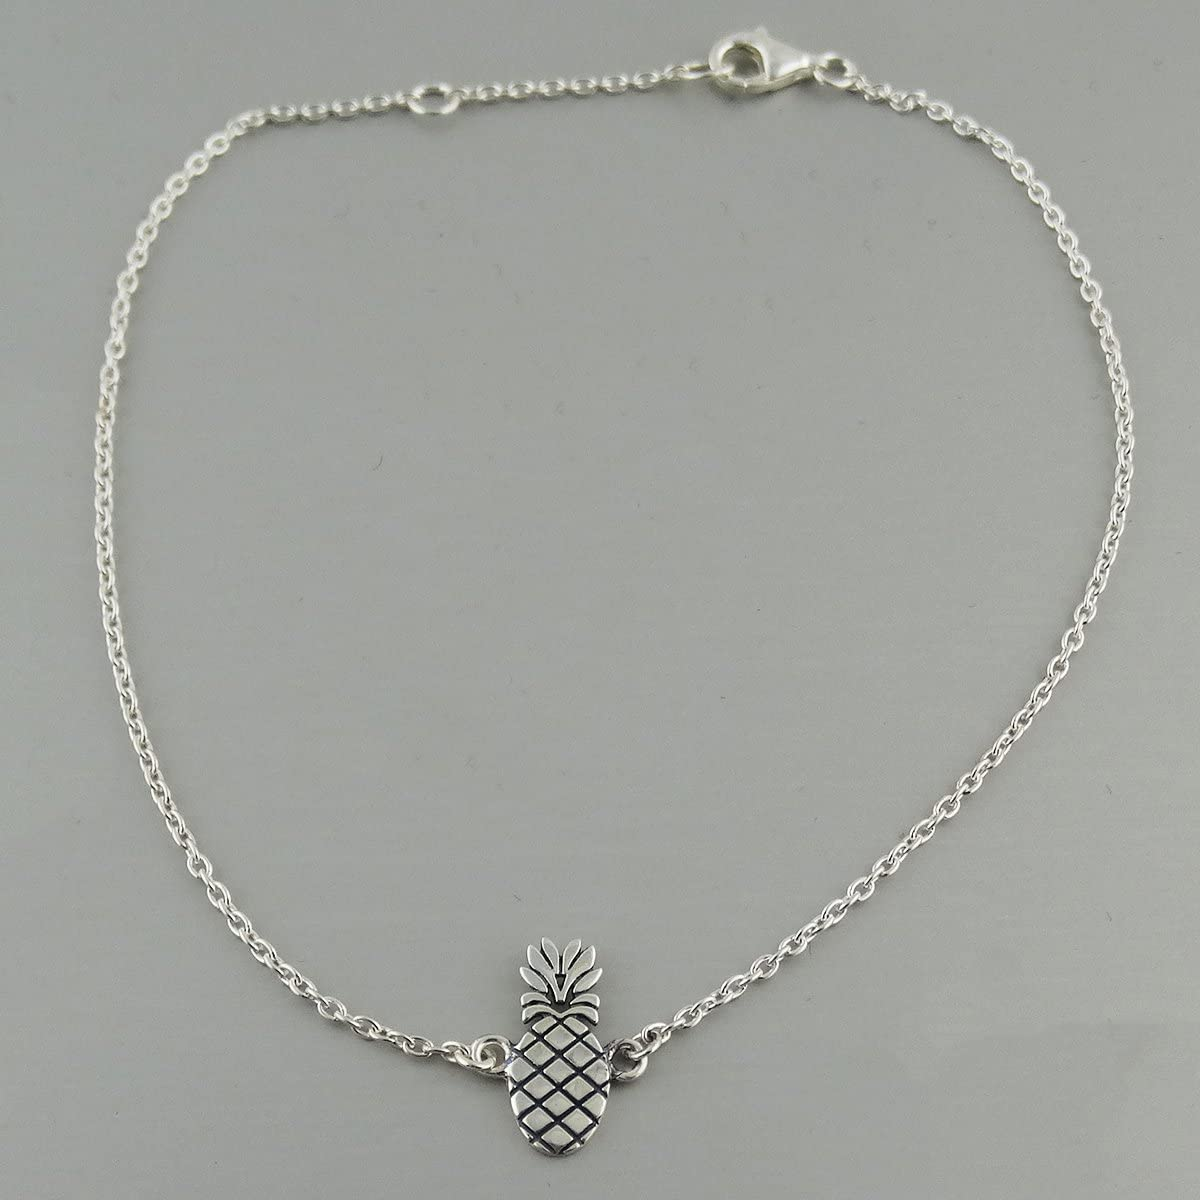 FashionJunkie4Life Sterling Silver Pineapple Anklet Adjustable 9 or 10 Hawaii Beach Vacation